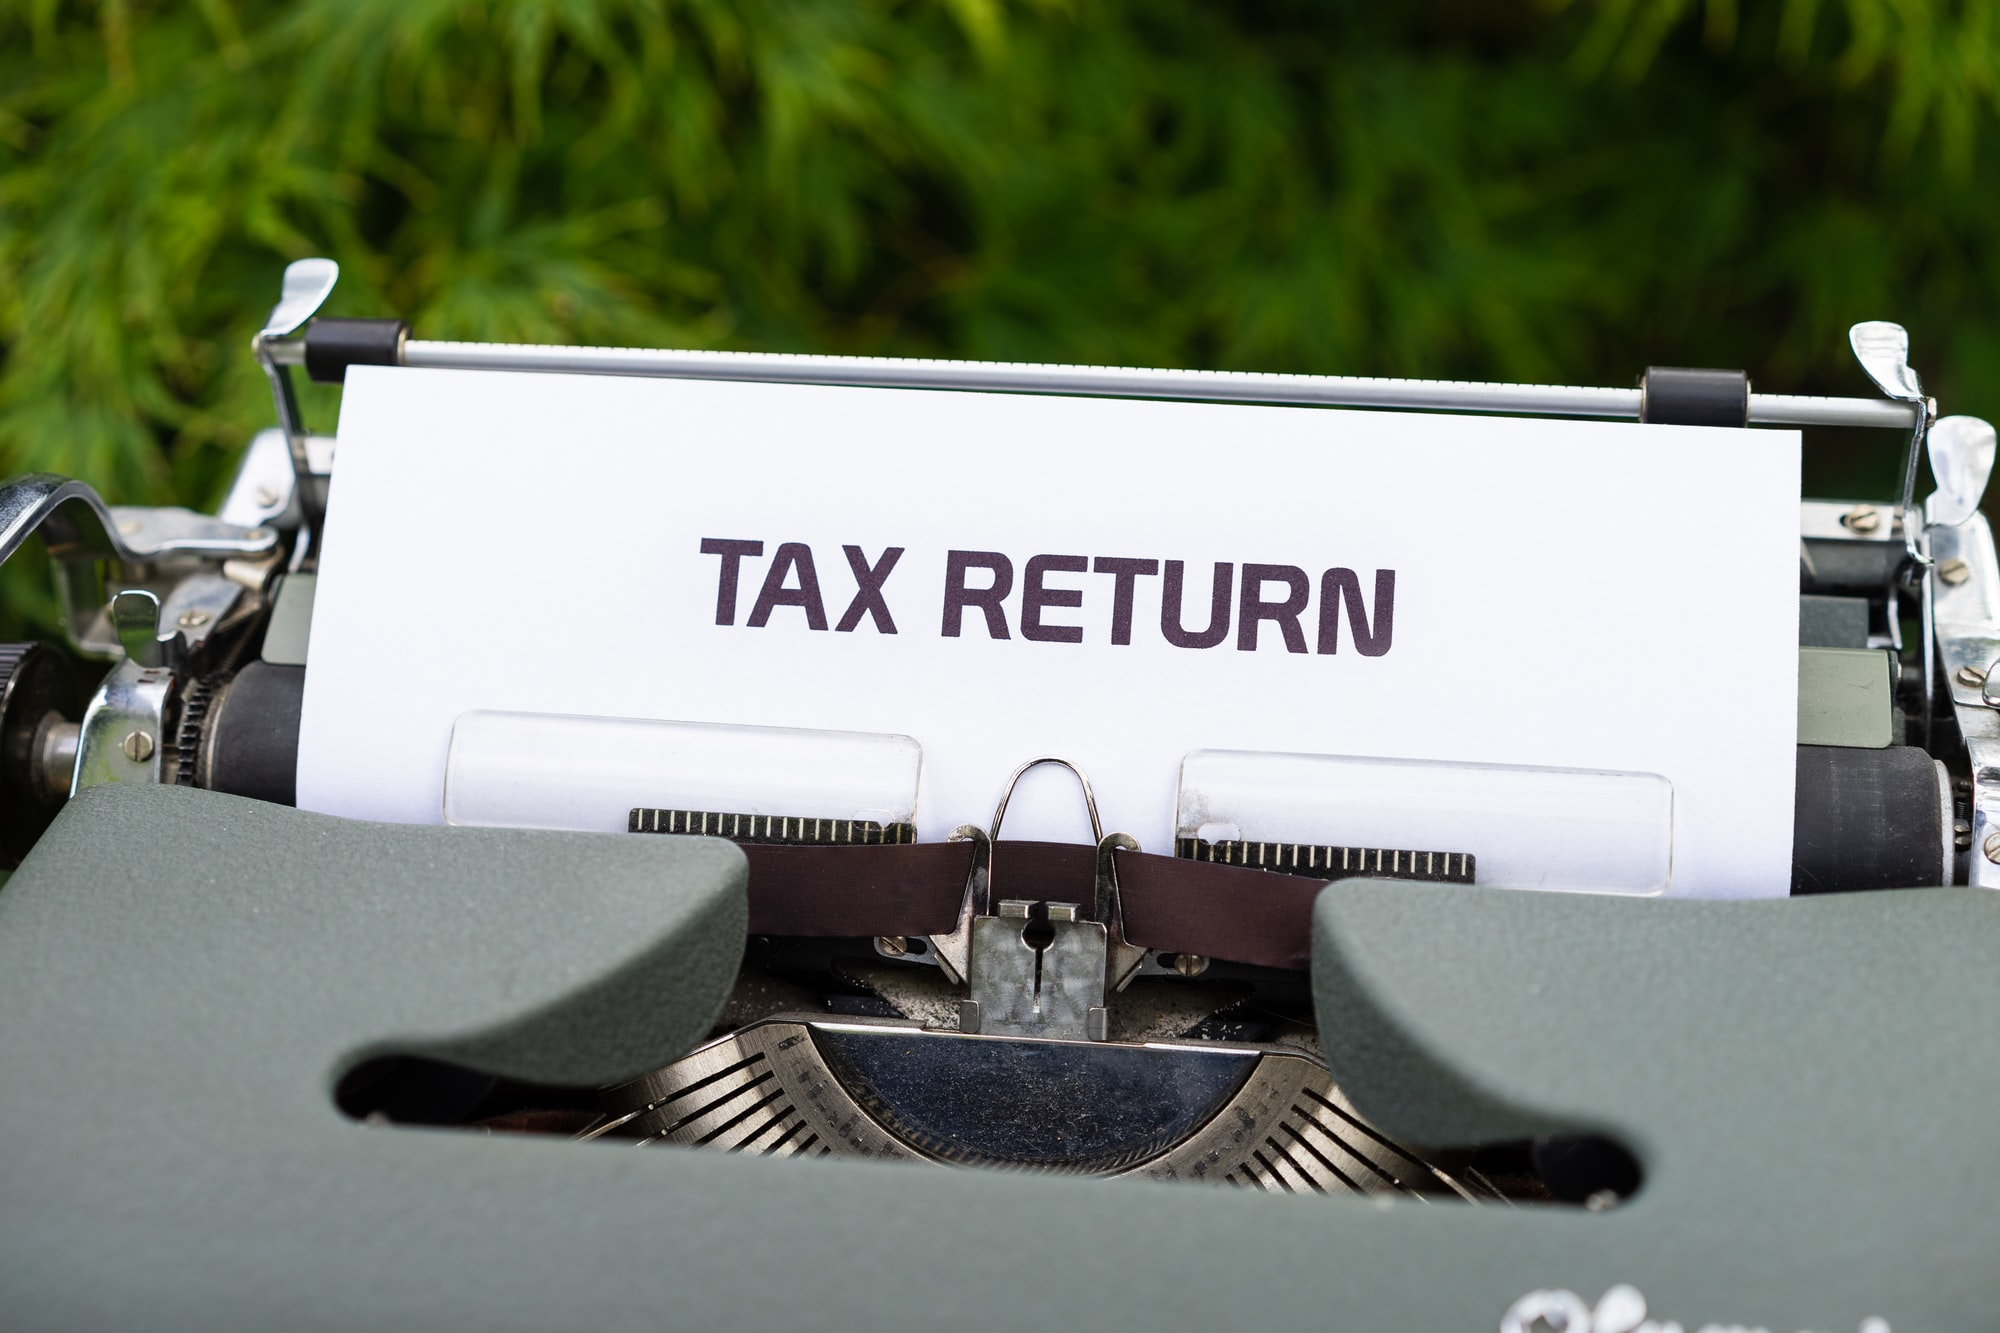 Sales and Service Tax return filing